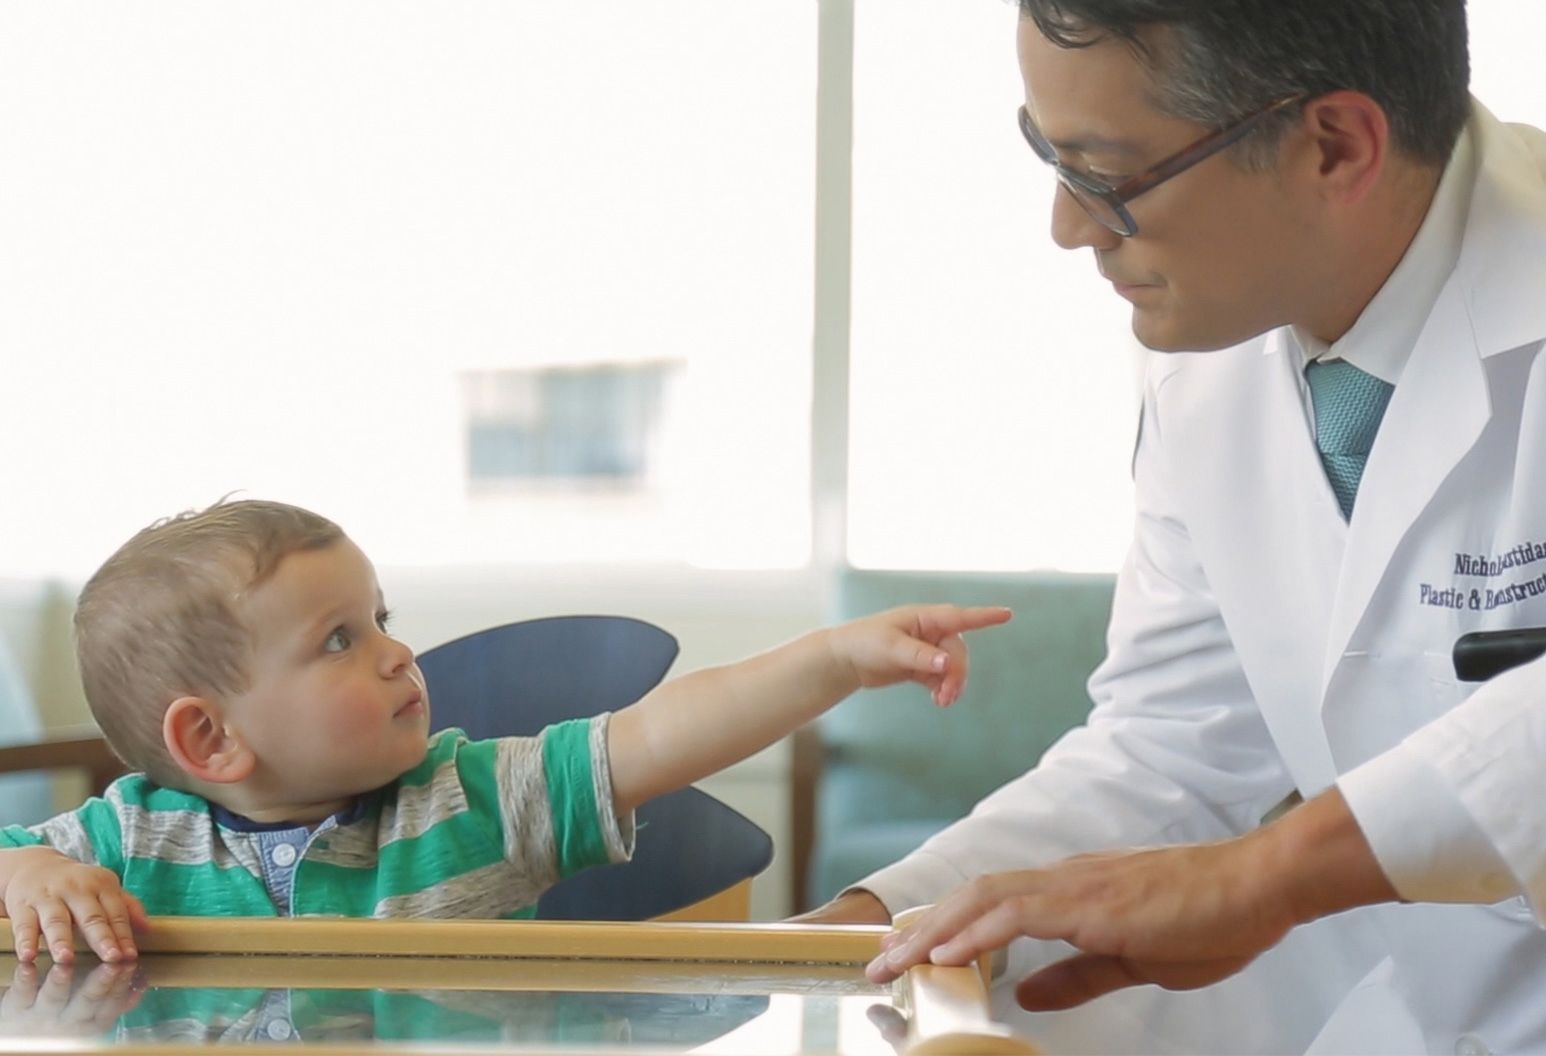 A 2-year-old boy wears a green and gray striped shirt and points and looks at a male doctor in a white lab coat, who smiles back at him.